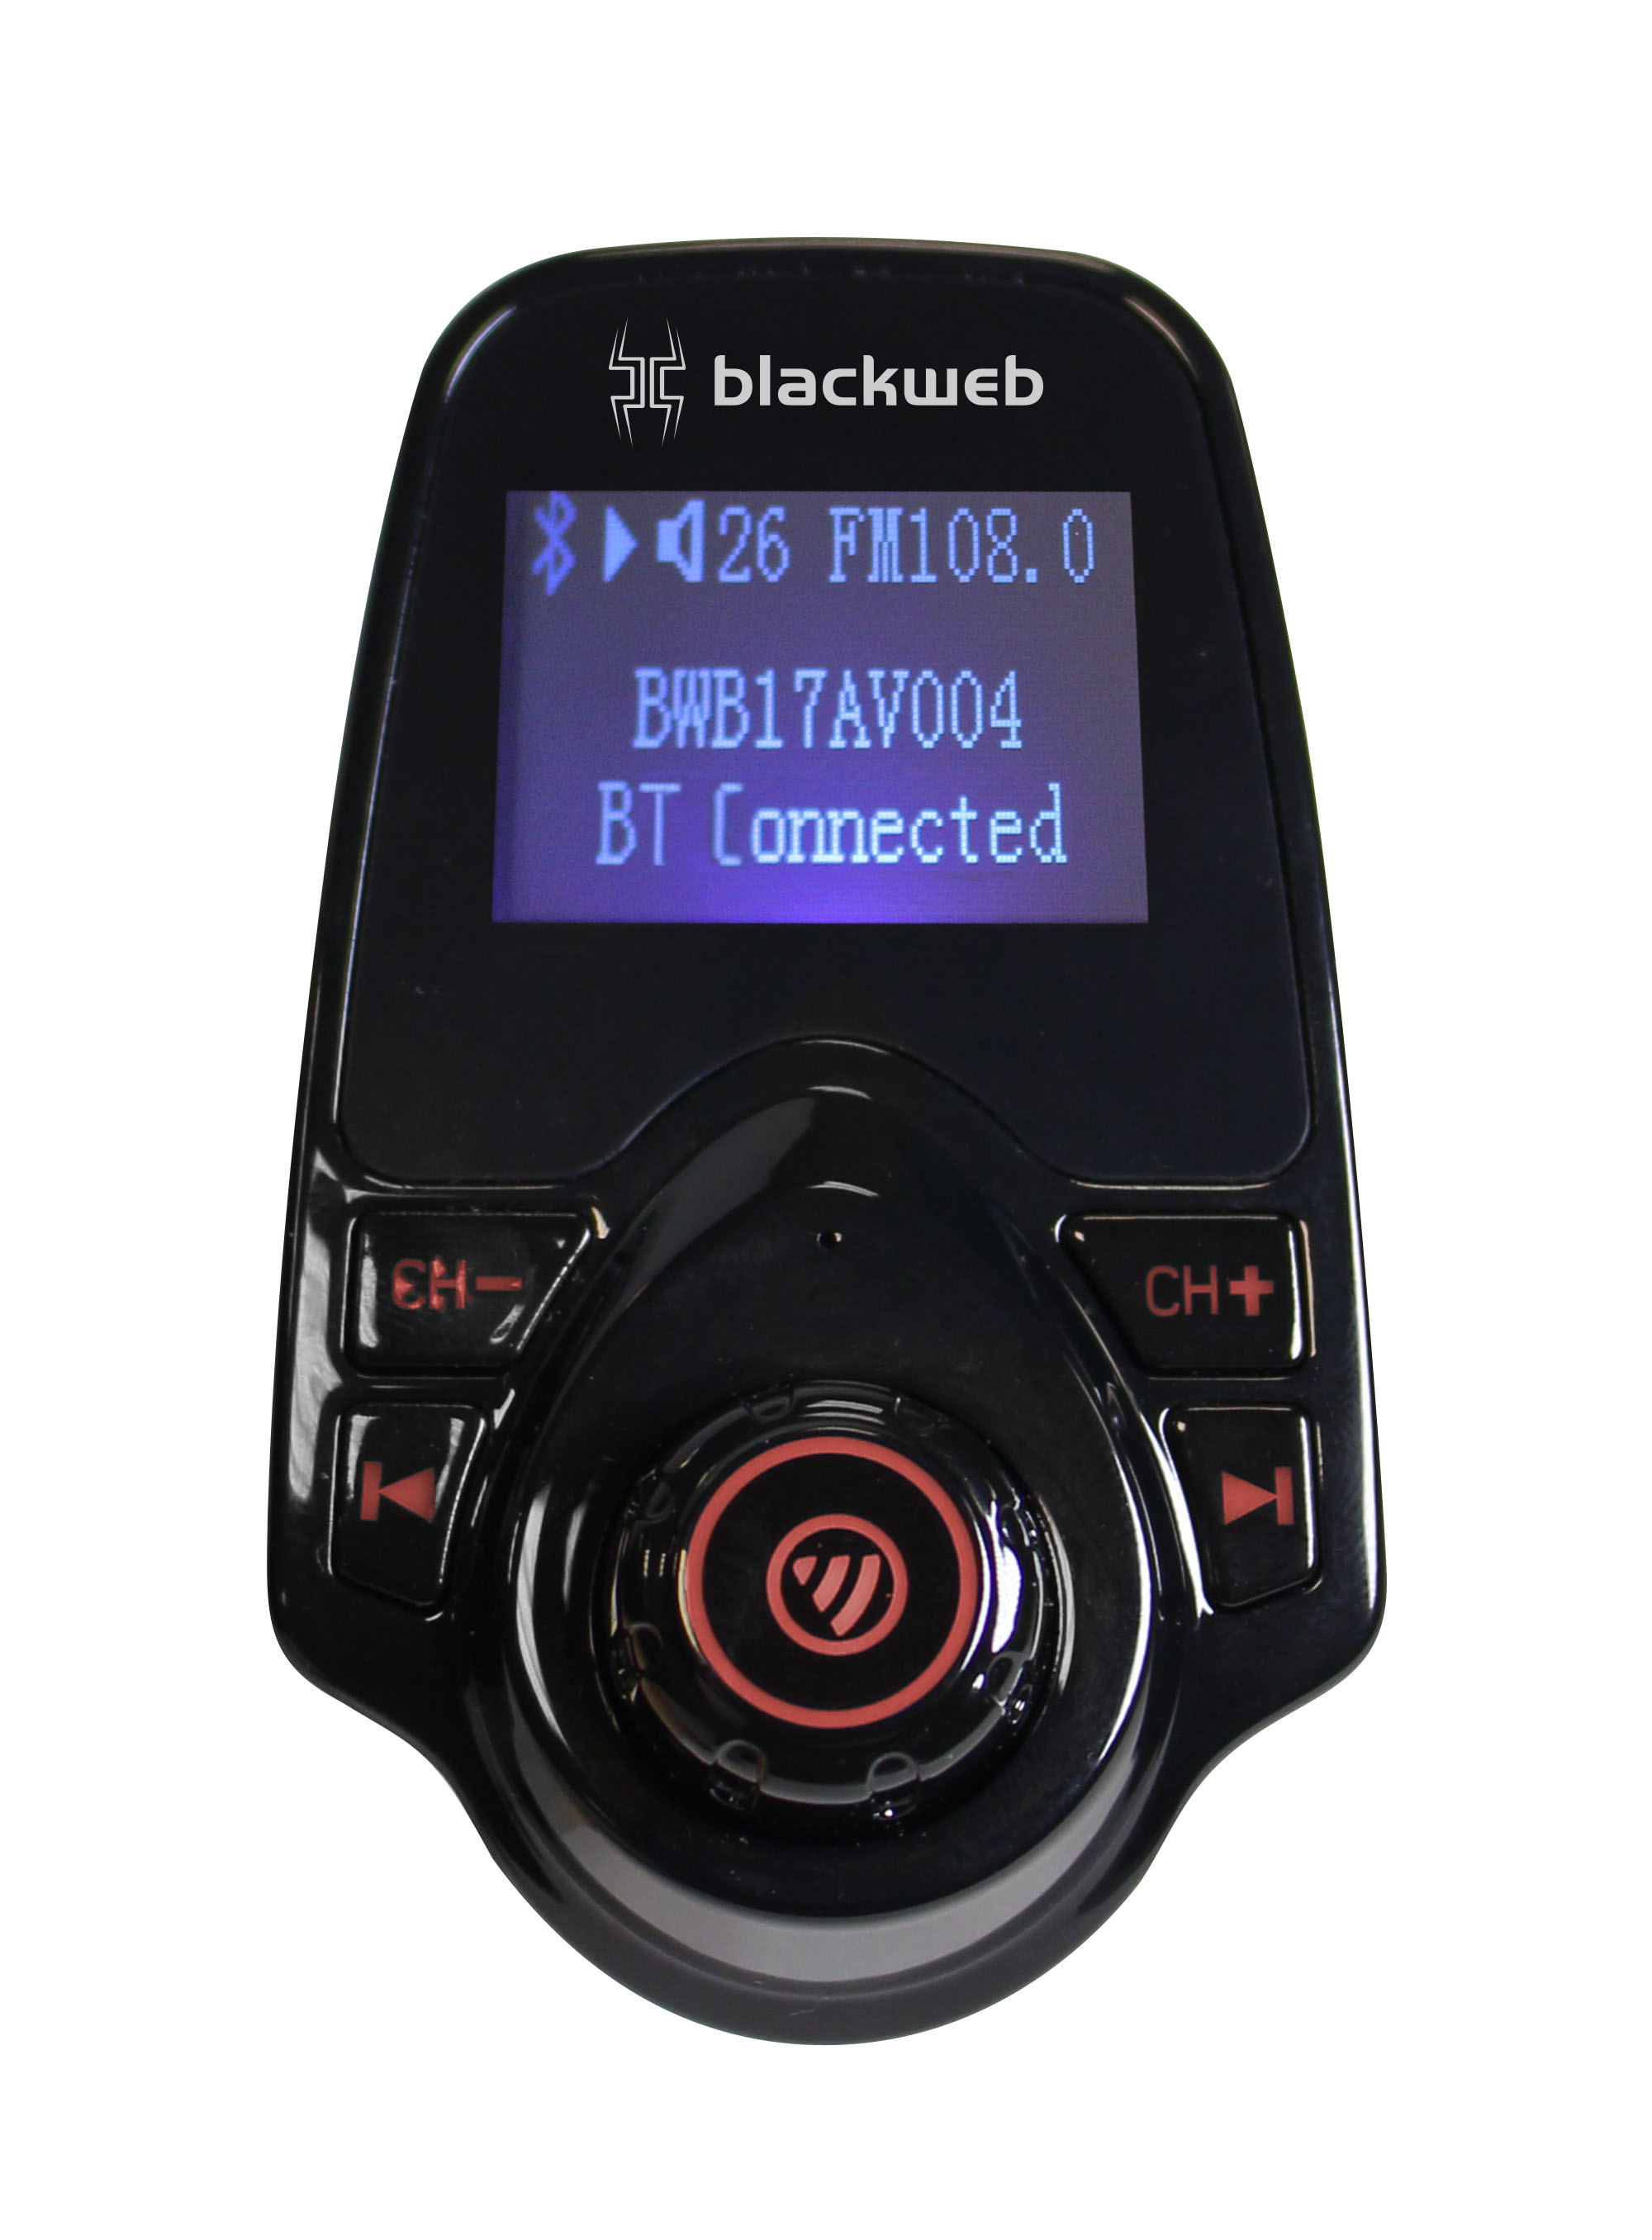 Blackweb Fm Transmitter With Bluetooth Wireless Technology